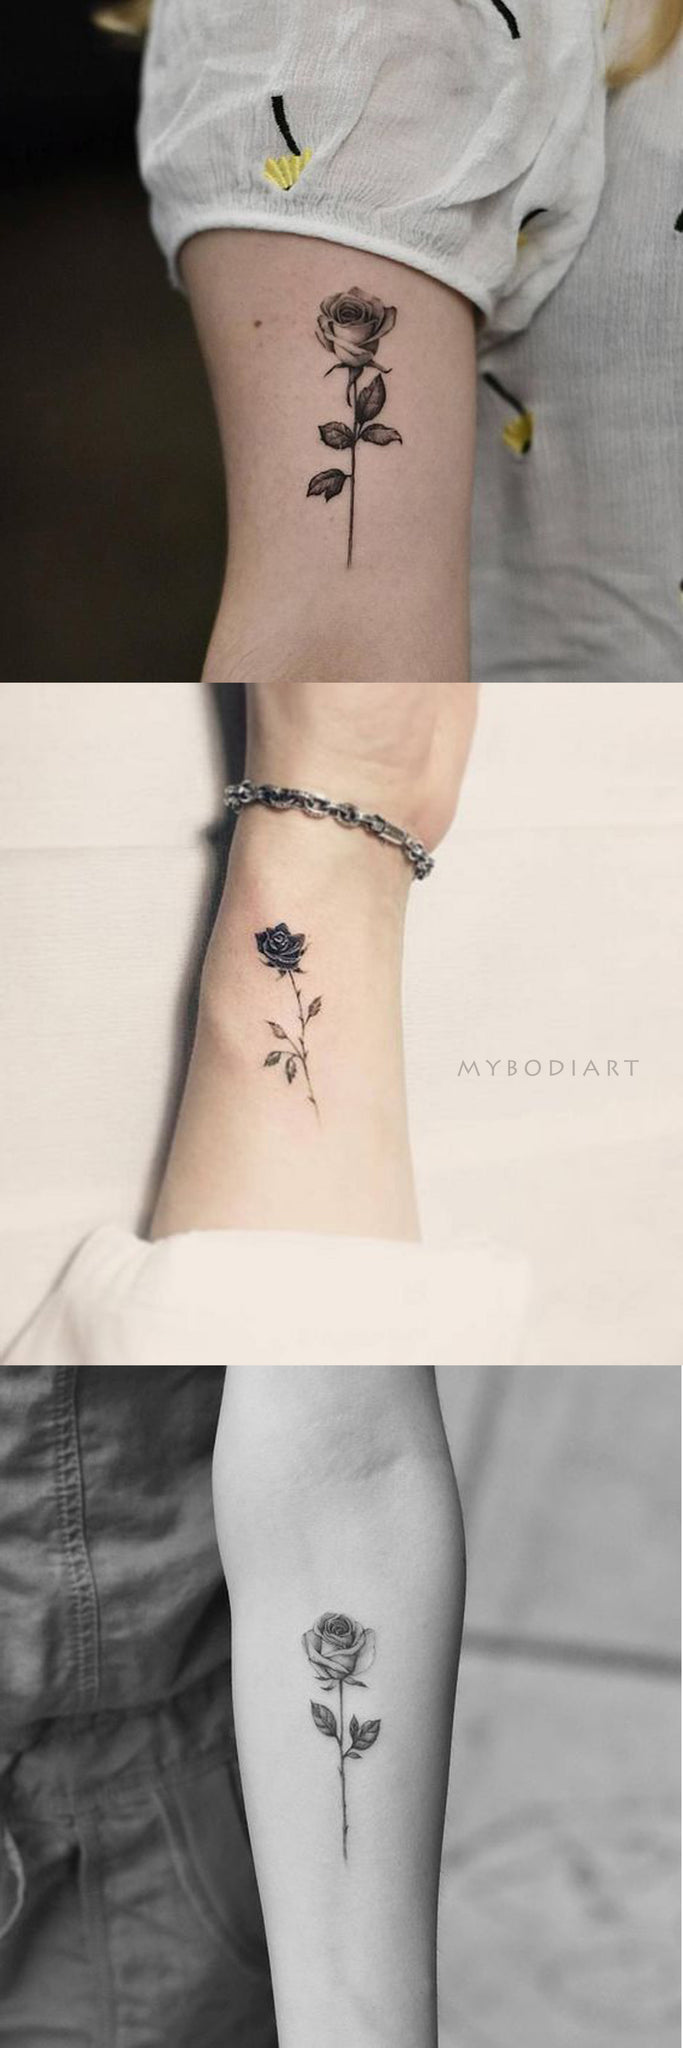 Popular Vintage Black Rose Wrist Arm Tattoo Ideas for Women -  Ideas de tatuaje de brazo de rosa negro vintage para mujeres - www.MyBodiArt.com